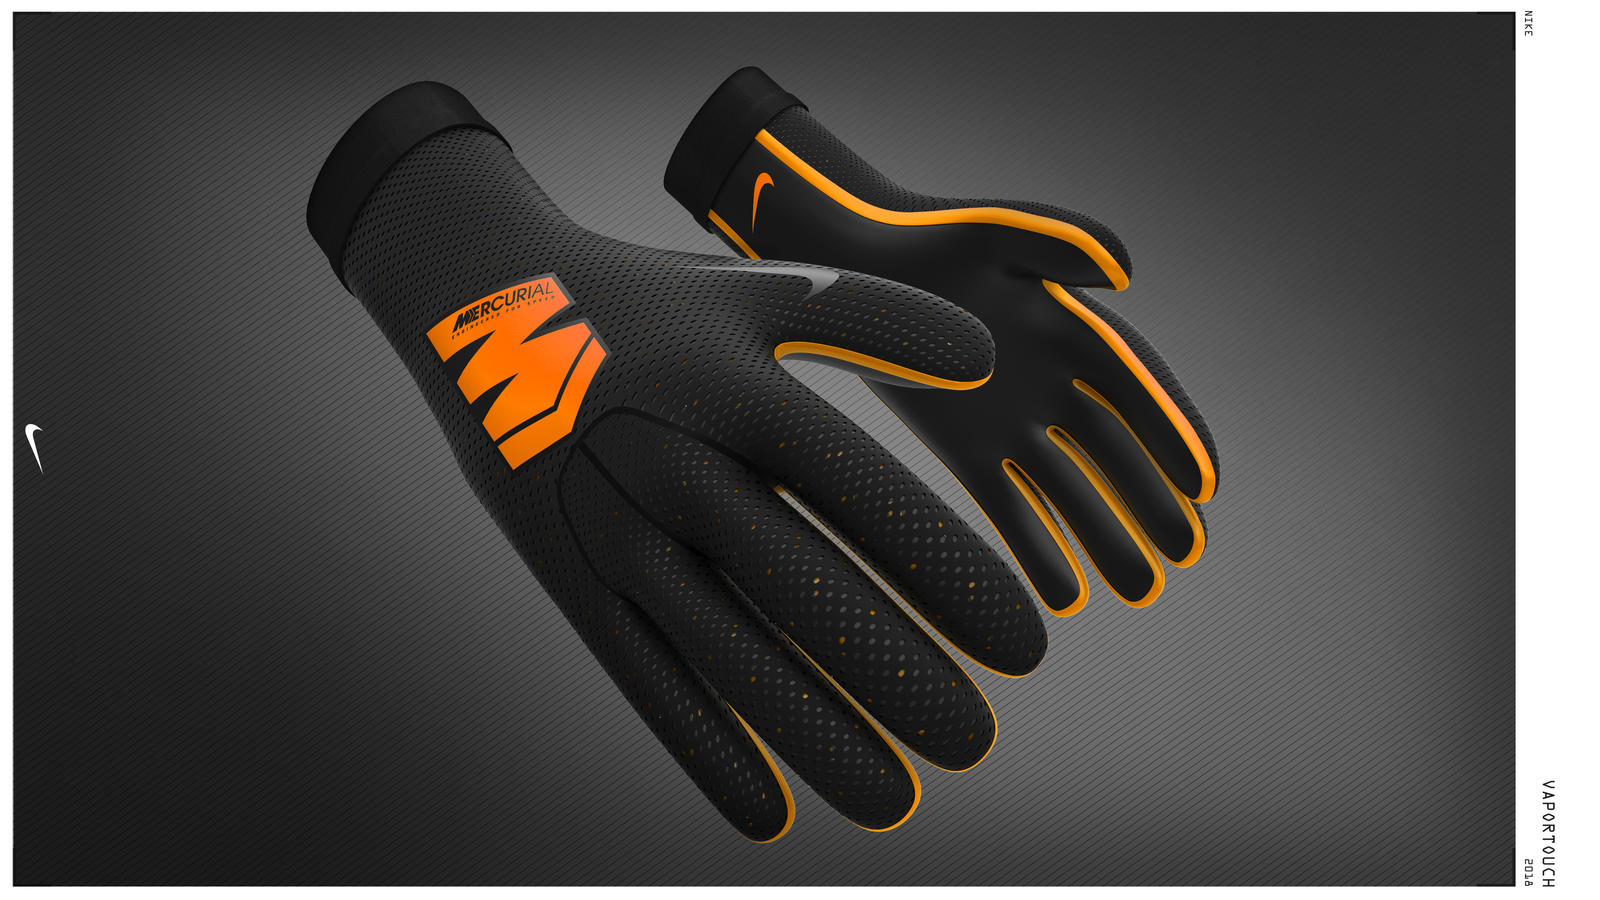 Perpetuo Estacionario Susceptibles a  Nike Reimagines Goalkeeper Gloves - Nike News